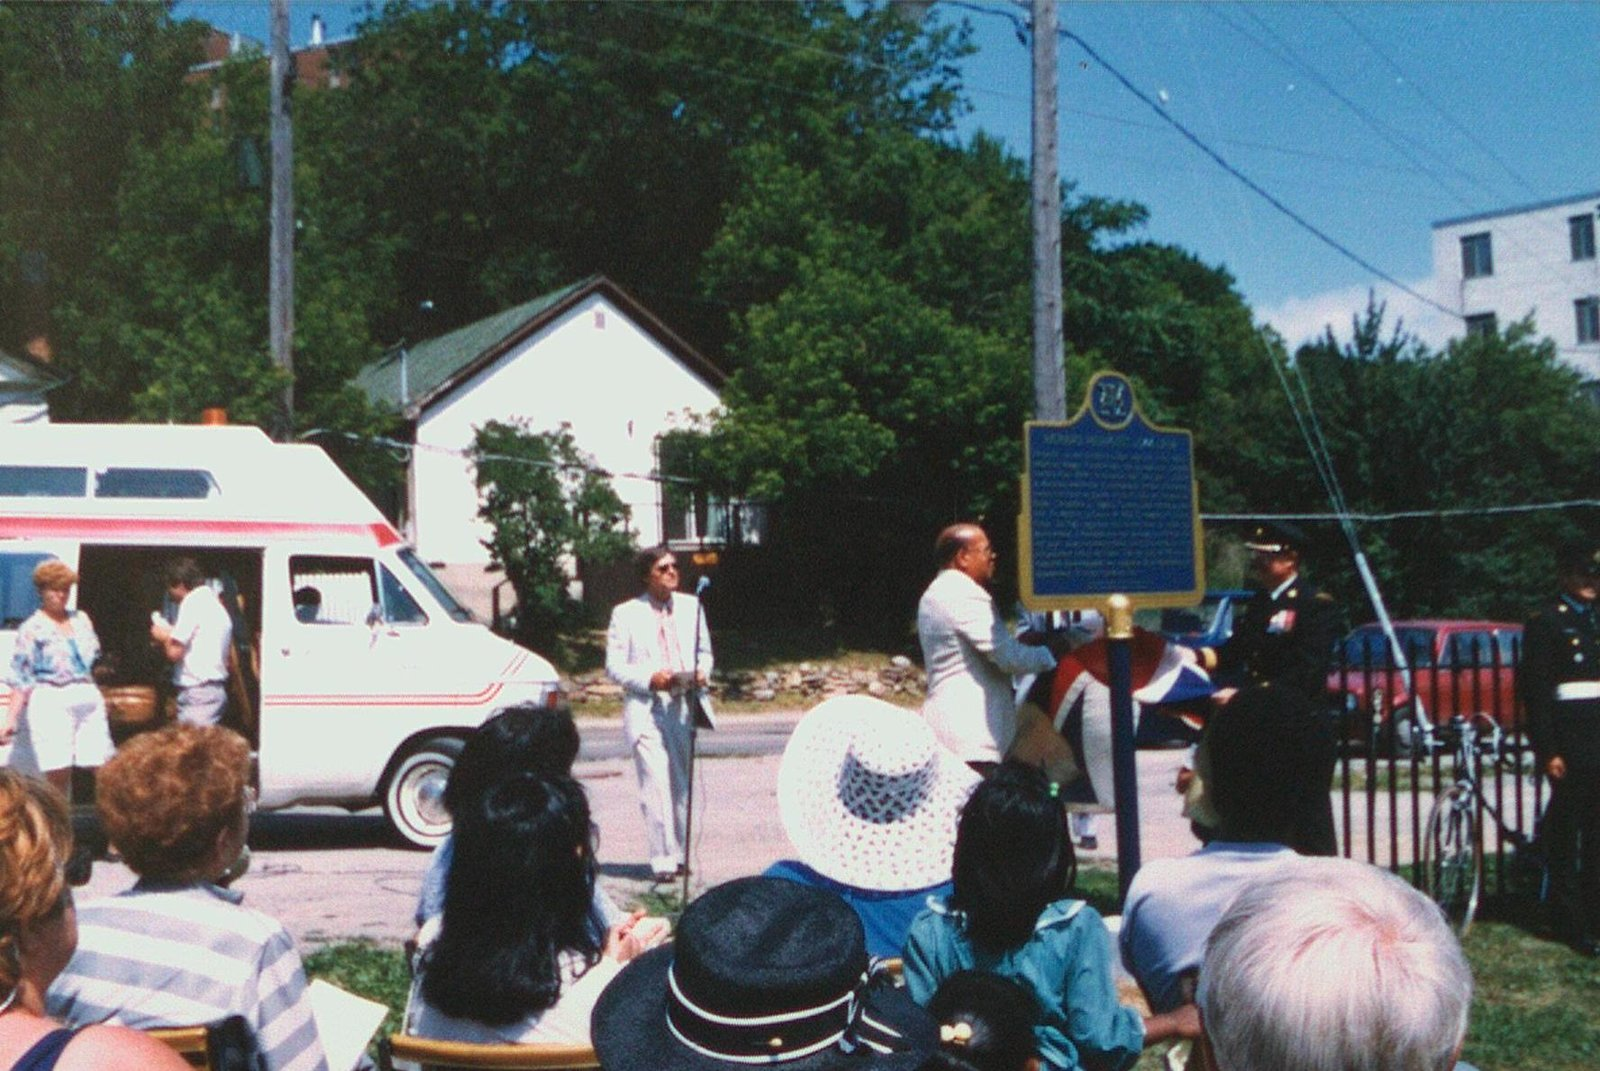 A photograph of the Richard Pierpoint plaque unveiling in St Catharines, 1985. <br>Courtesy the St Catharines Public Library.